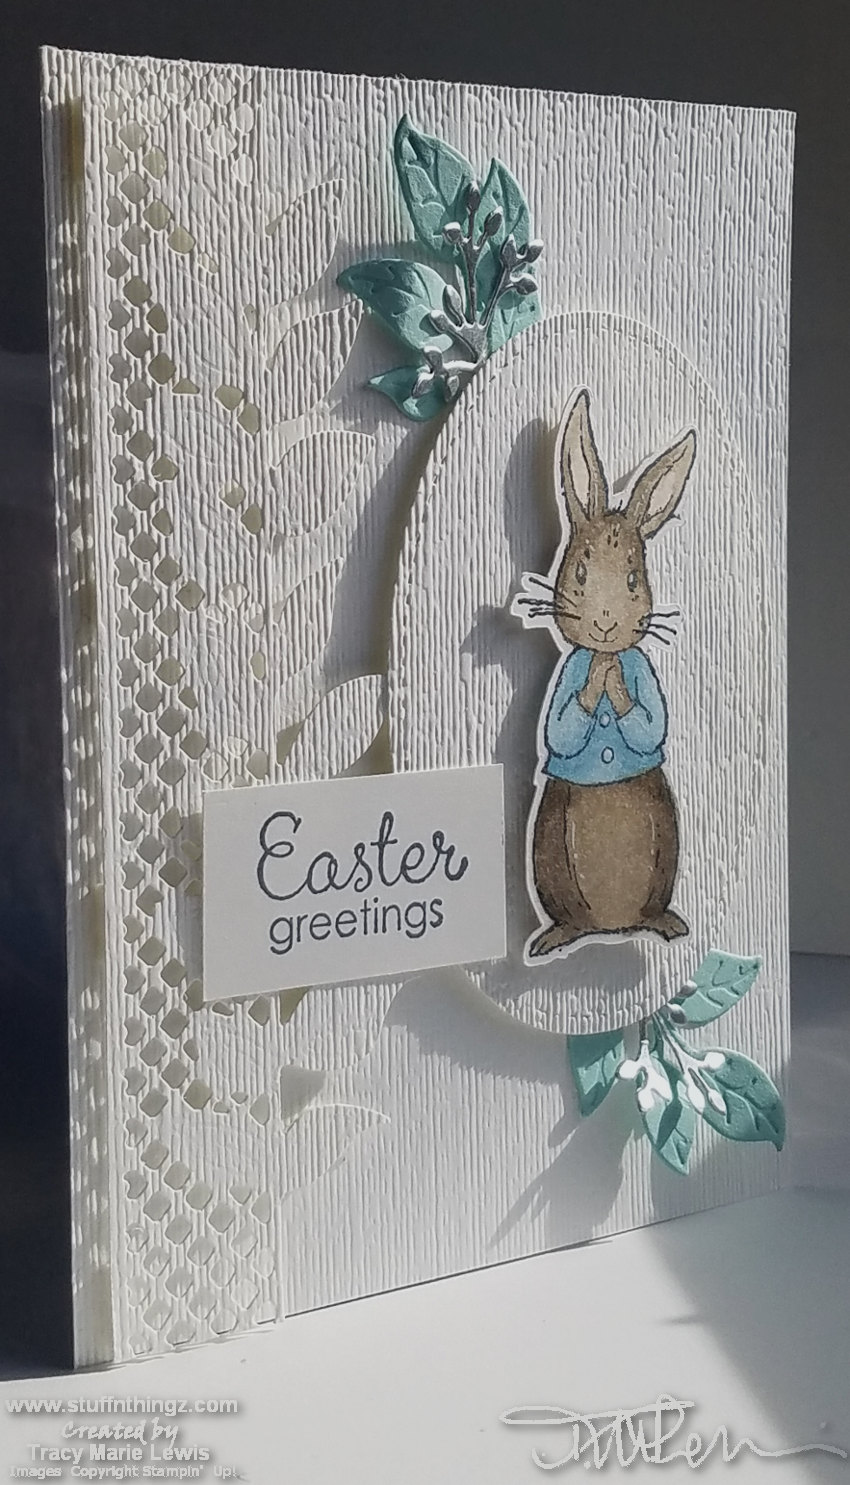 Textured Bunny Easter Card - March 2019 Stamp 'N Hop | Tracy Marie Lewis | www.stuffnthingz.com